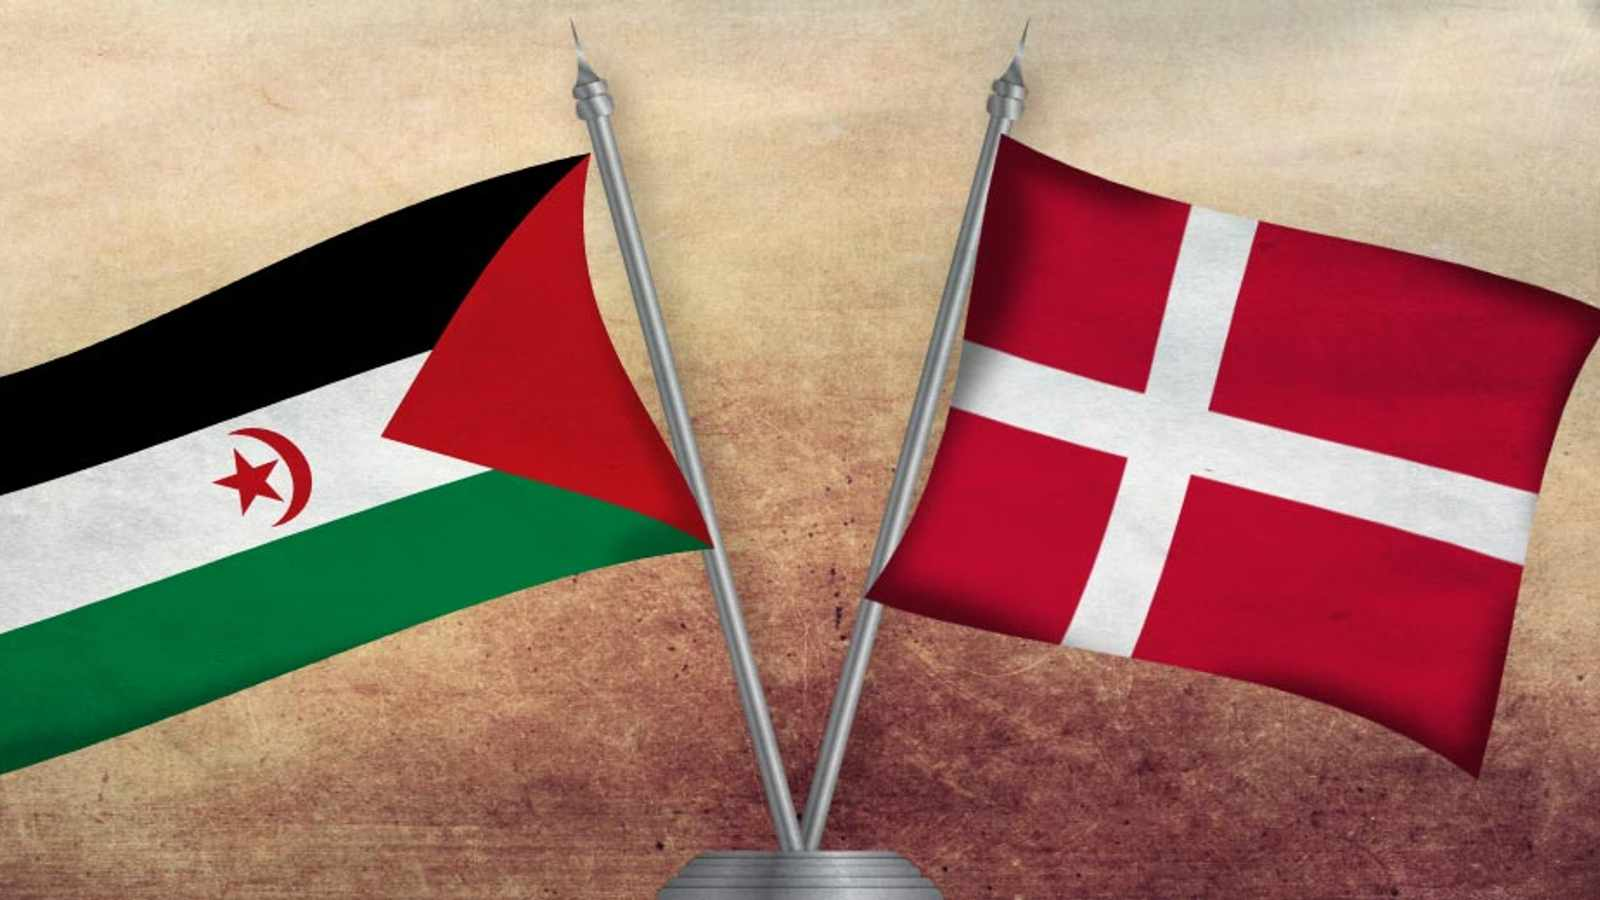 Danish appeal against trade with Western Sahara